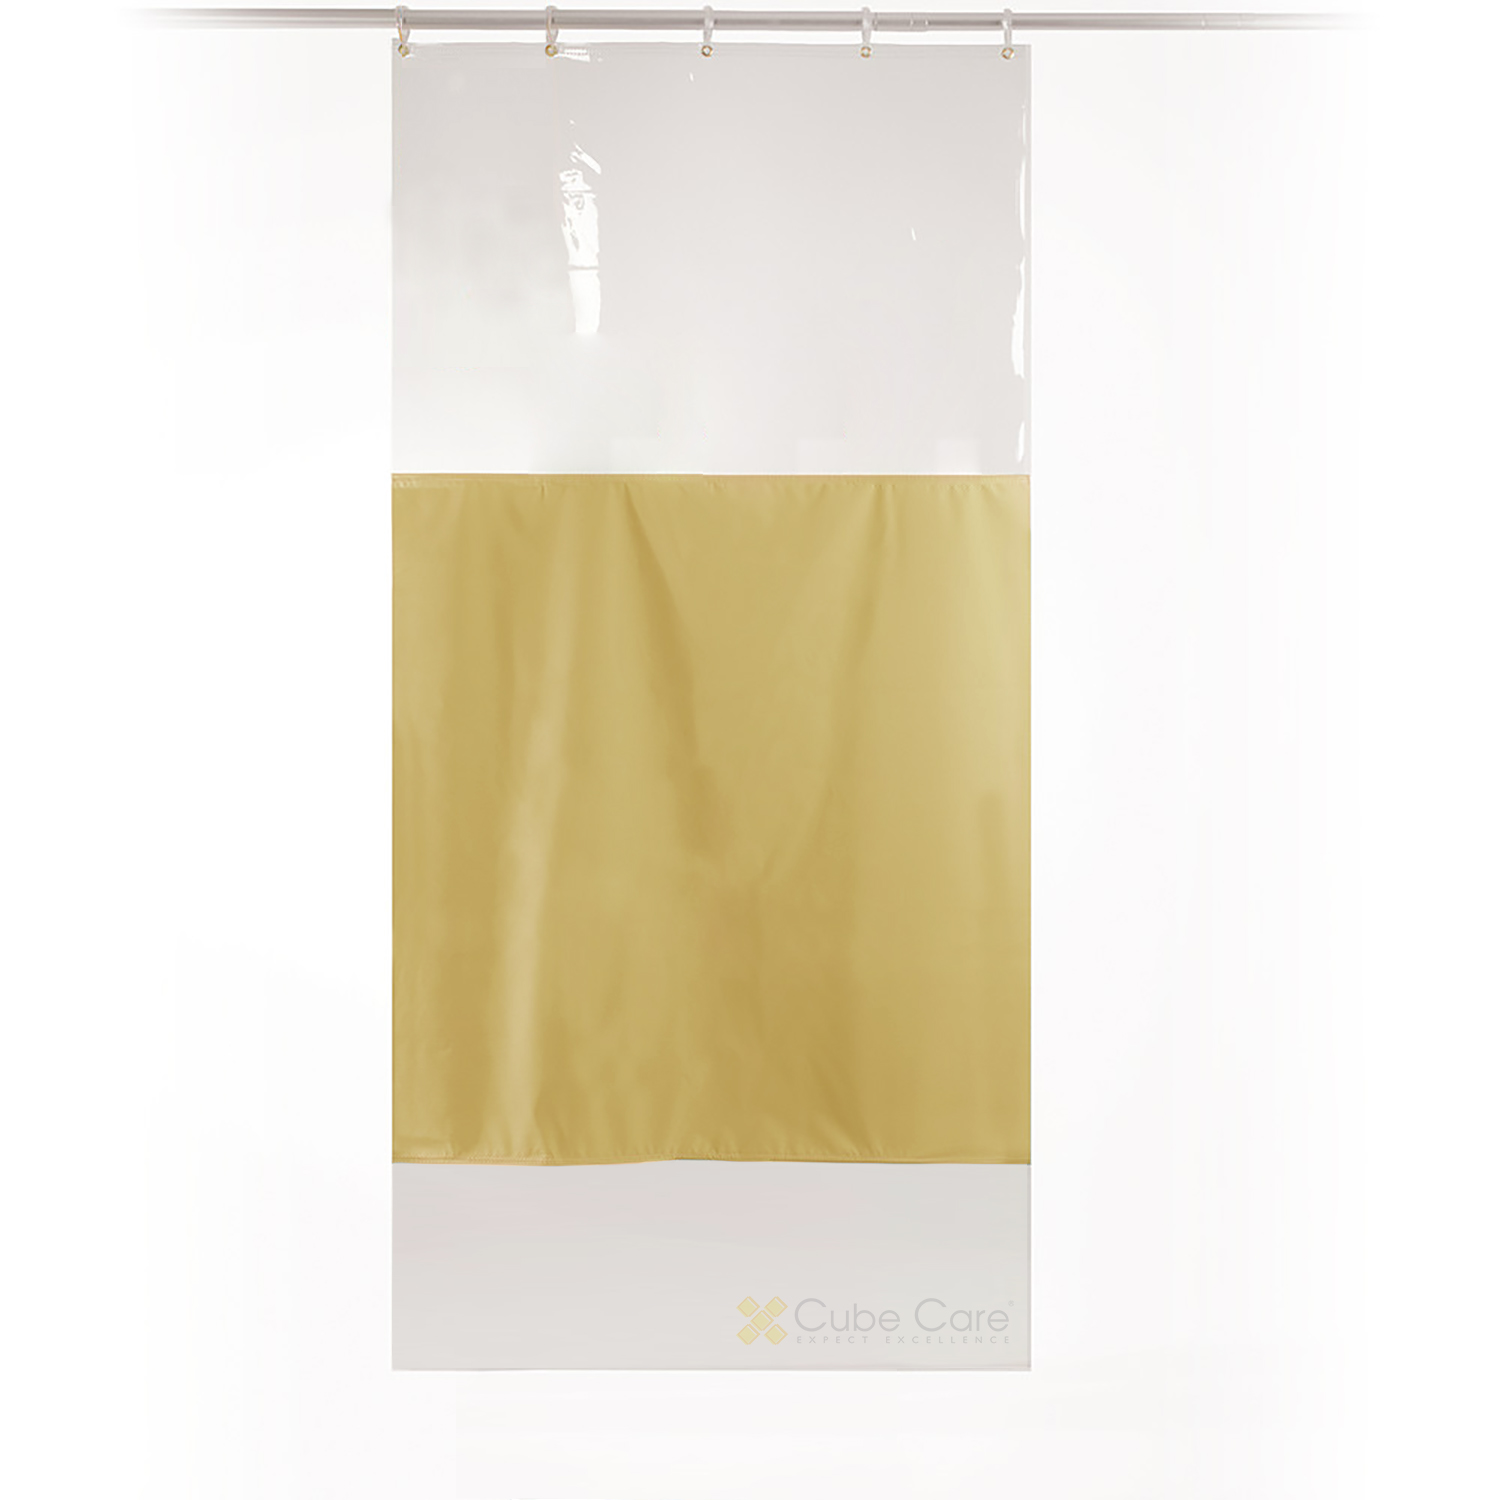 Hospital Shower Curtains - Behavioral Health Shower Curtain